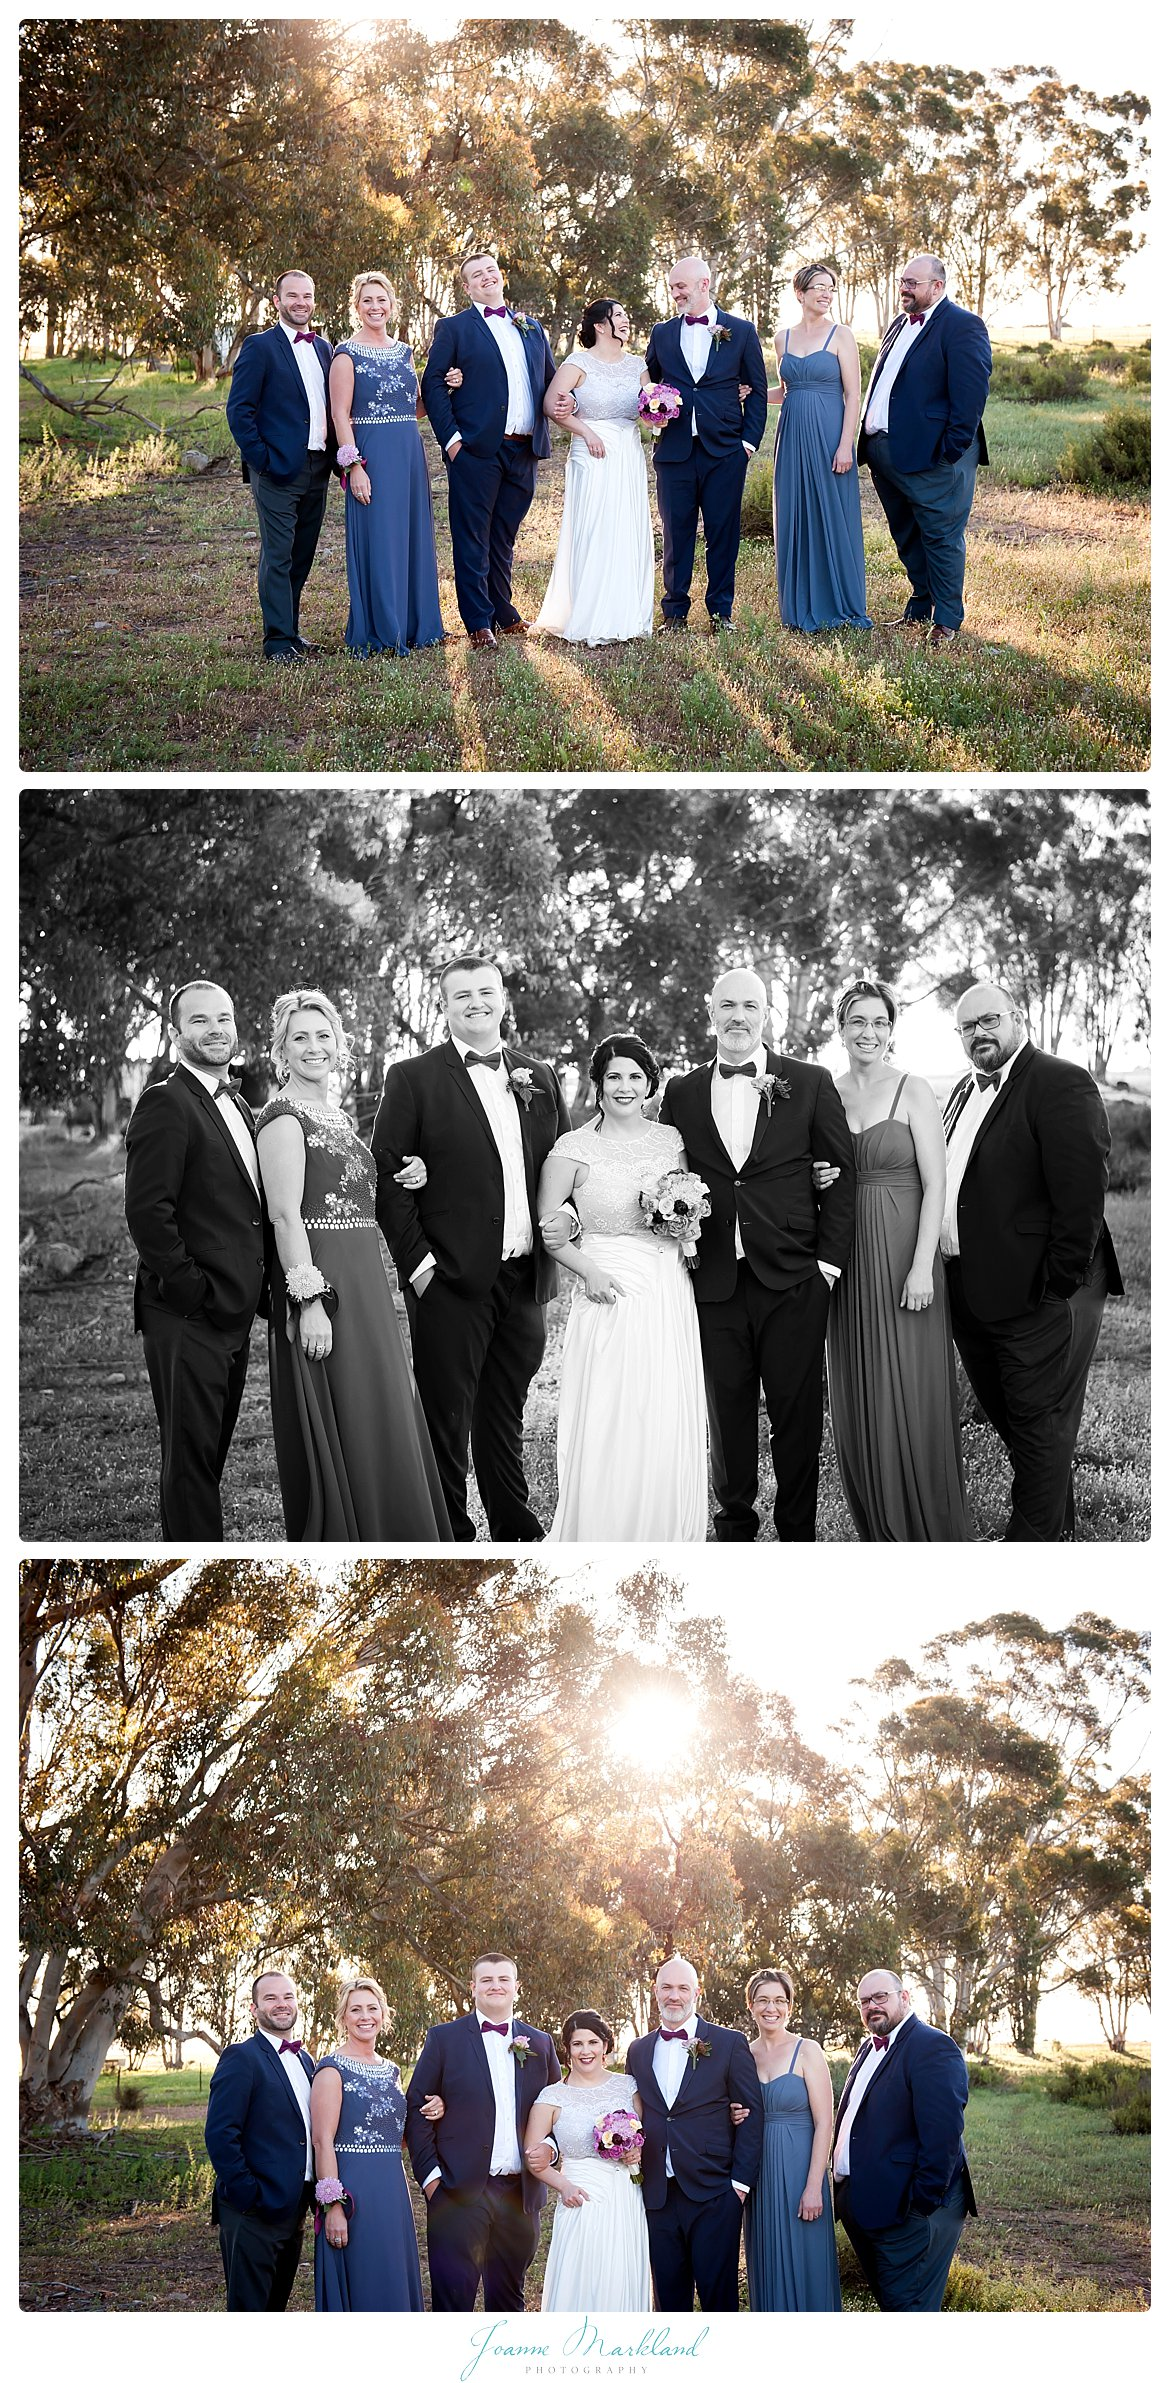 boorwater-wedding-hopefield-west-coast-cape-town-joanne-markland-photography-034